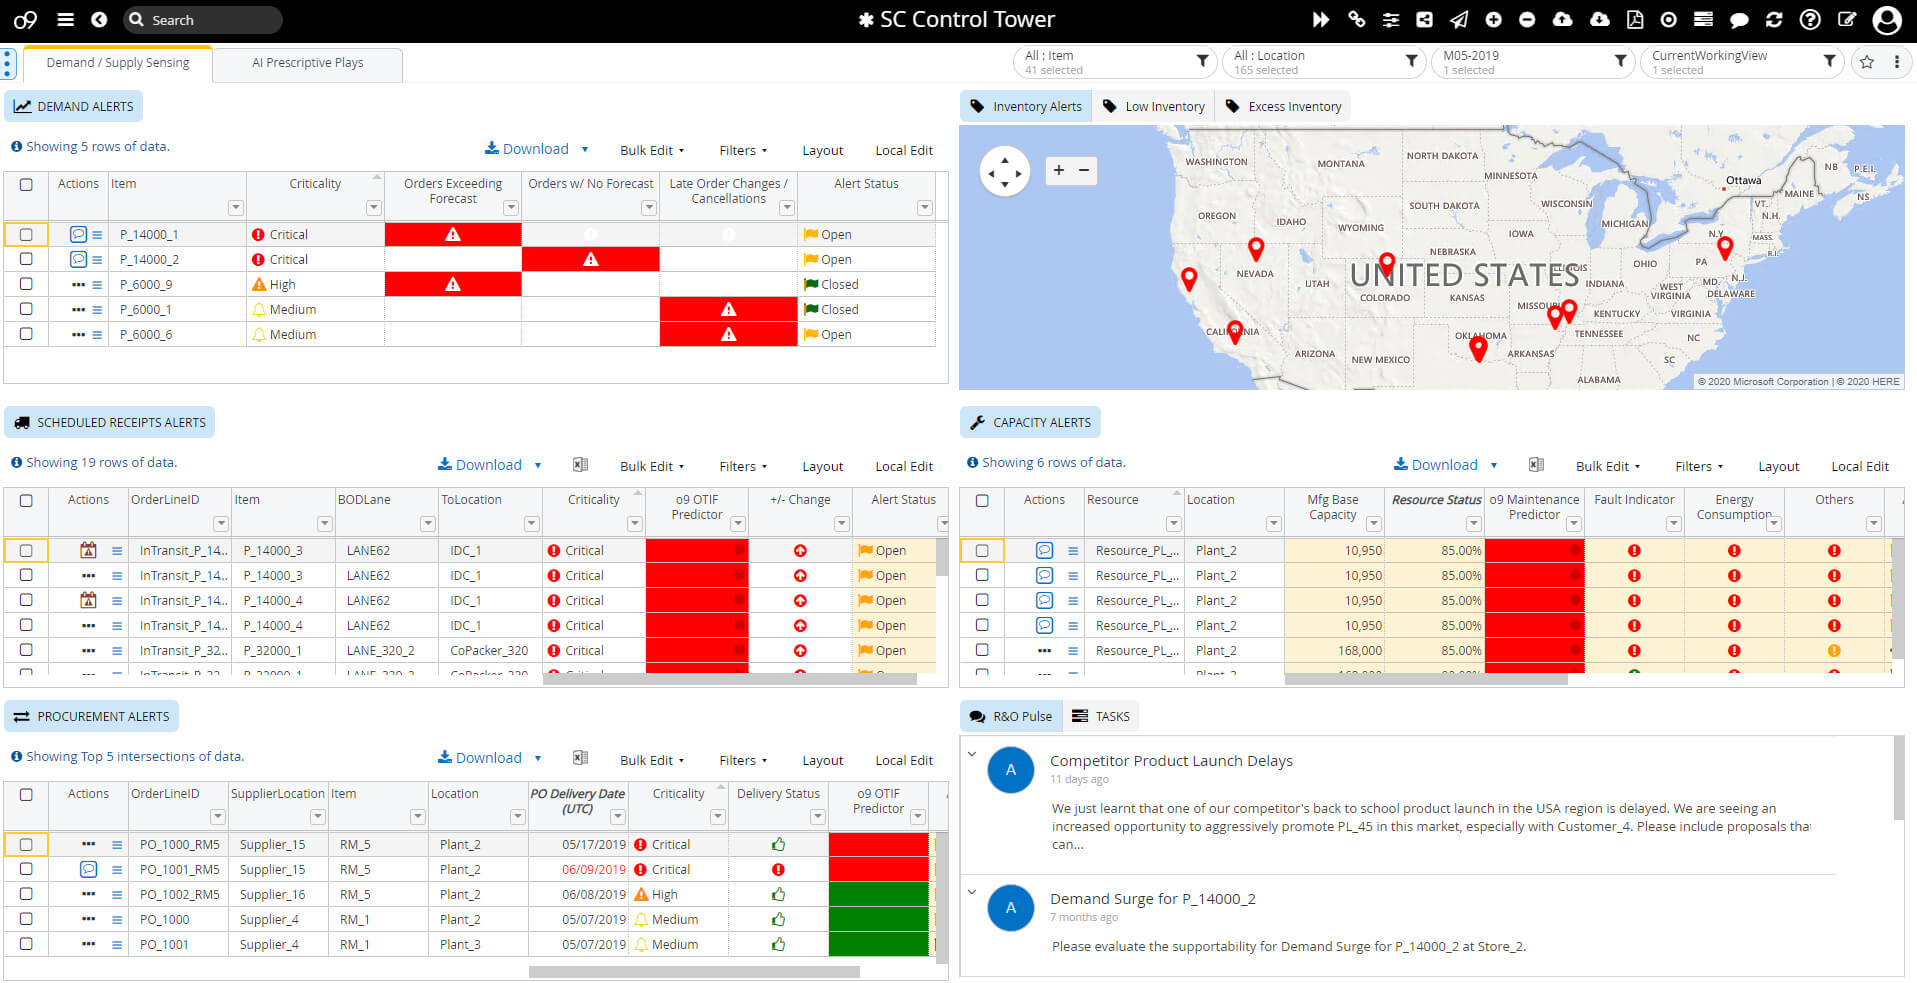 o9 Solutions' supply chain control tower software working interface for demand/supply sensing